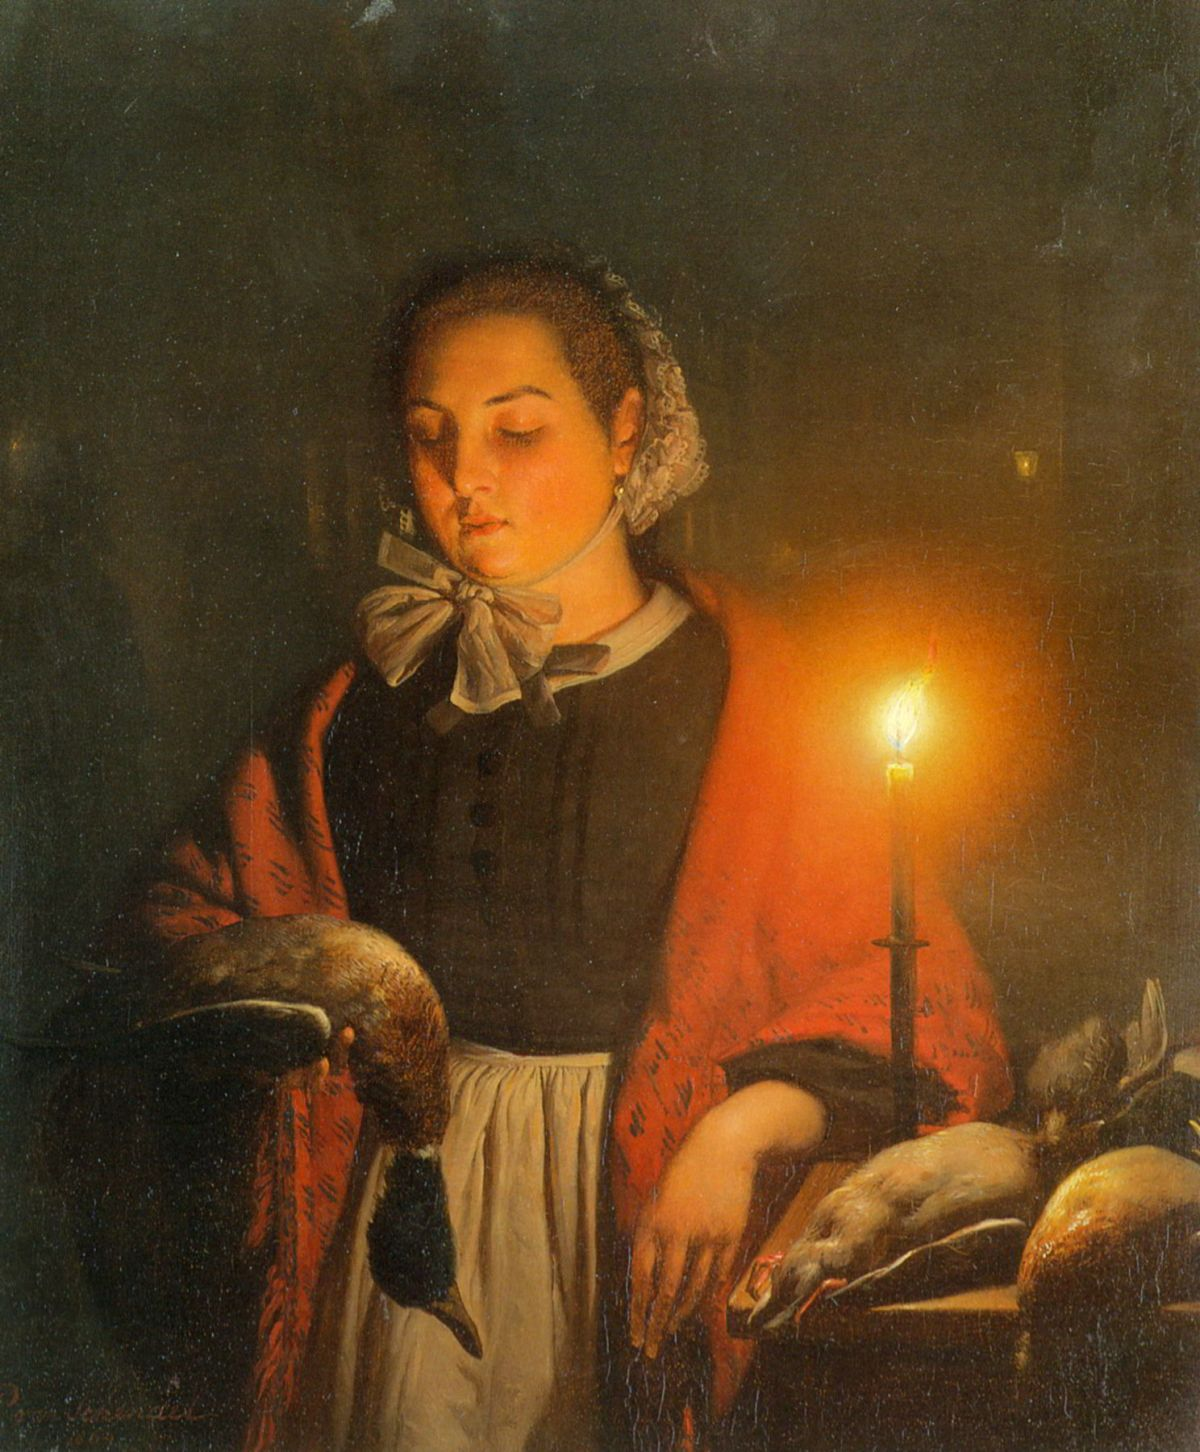 A Careful Eye by Petrus Van Schendel